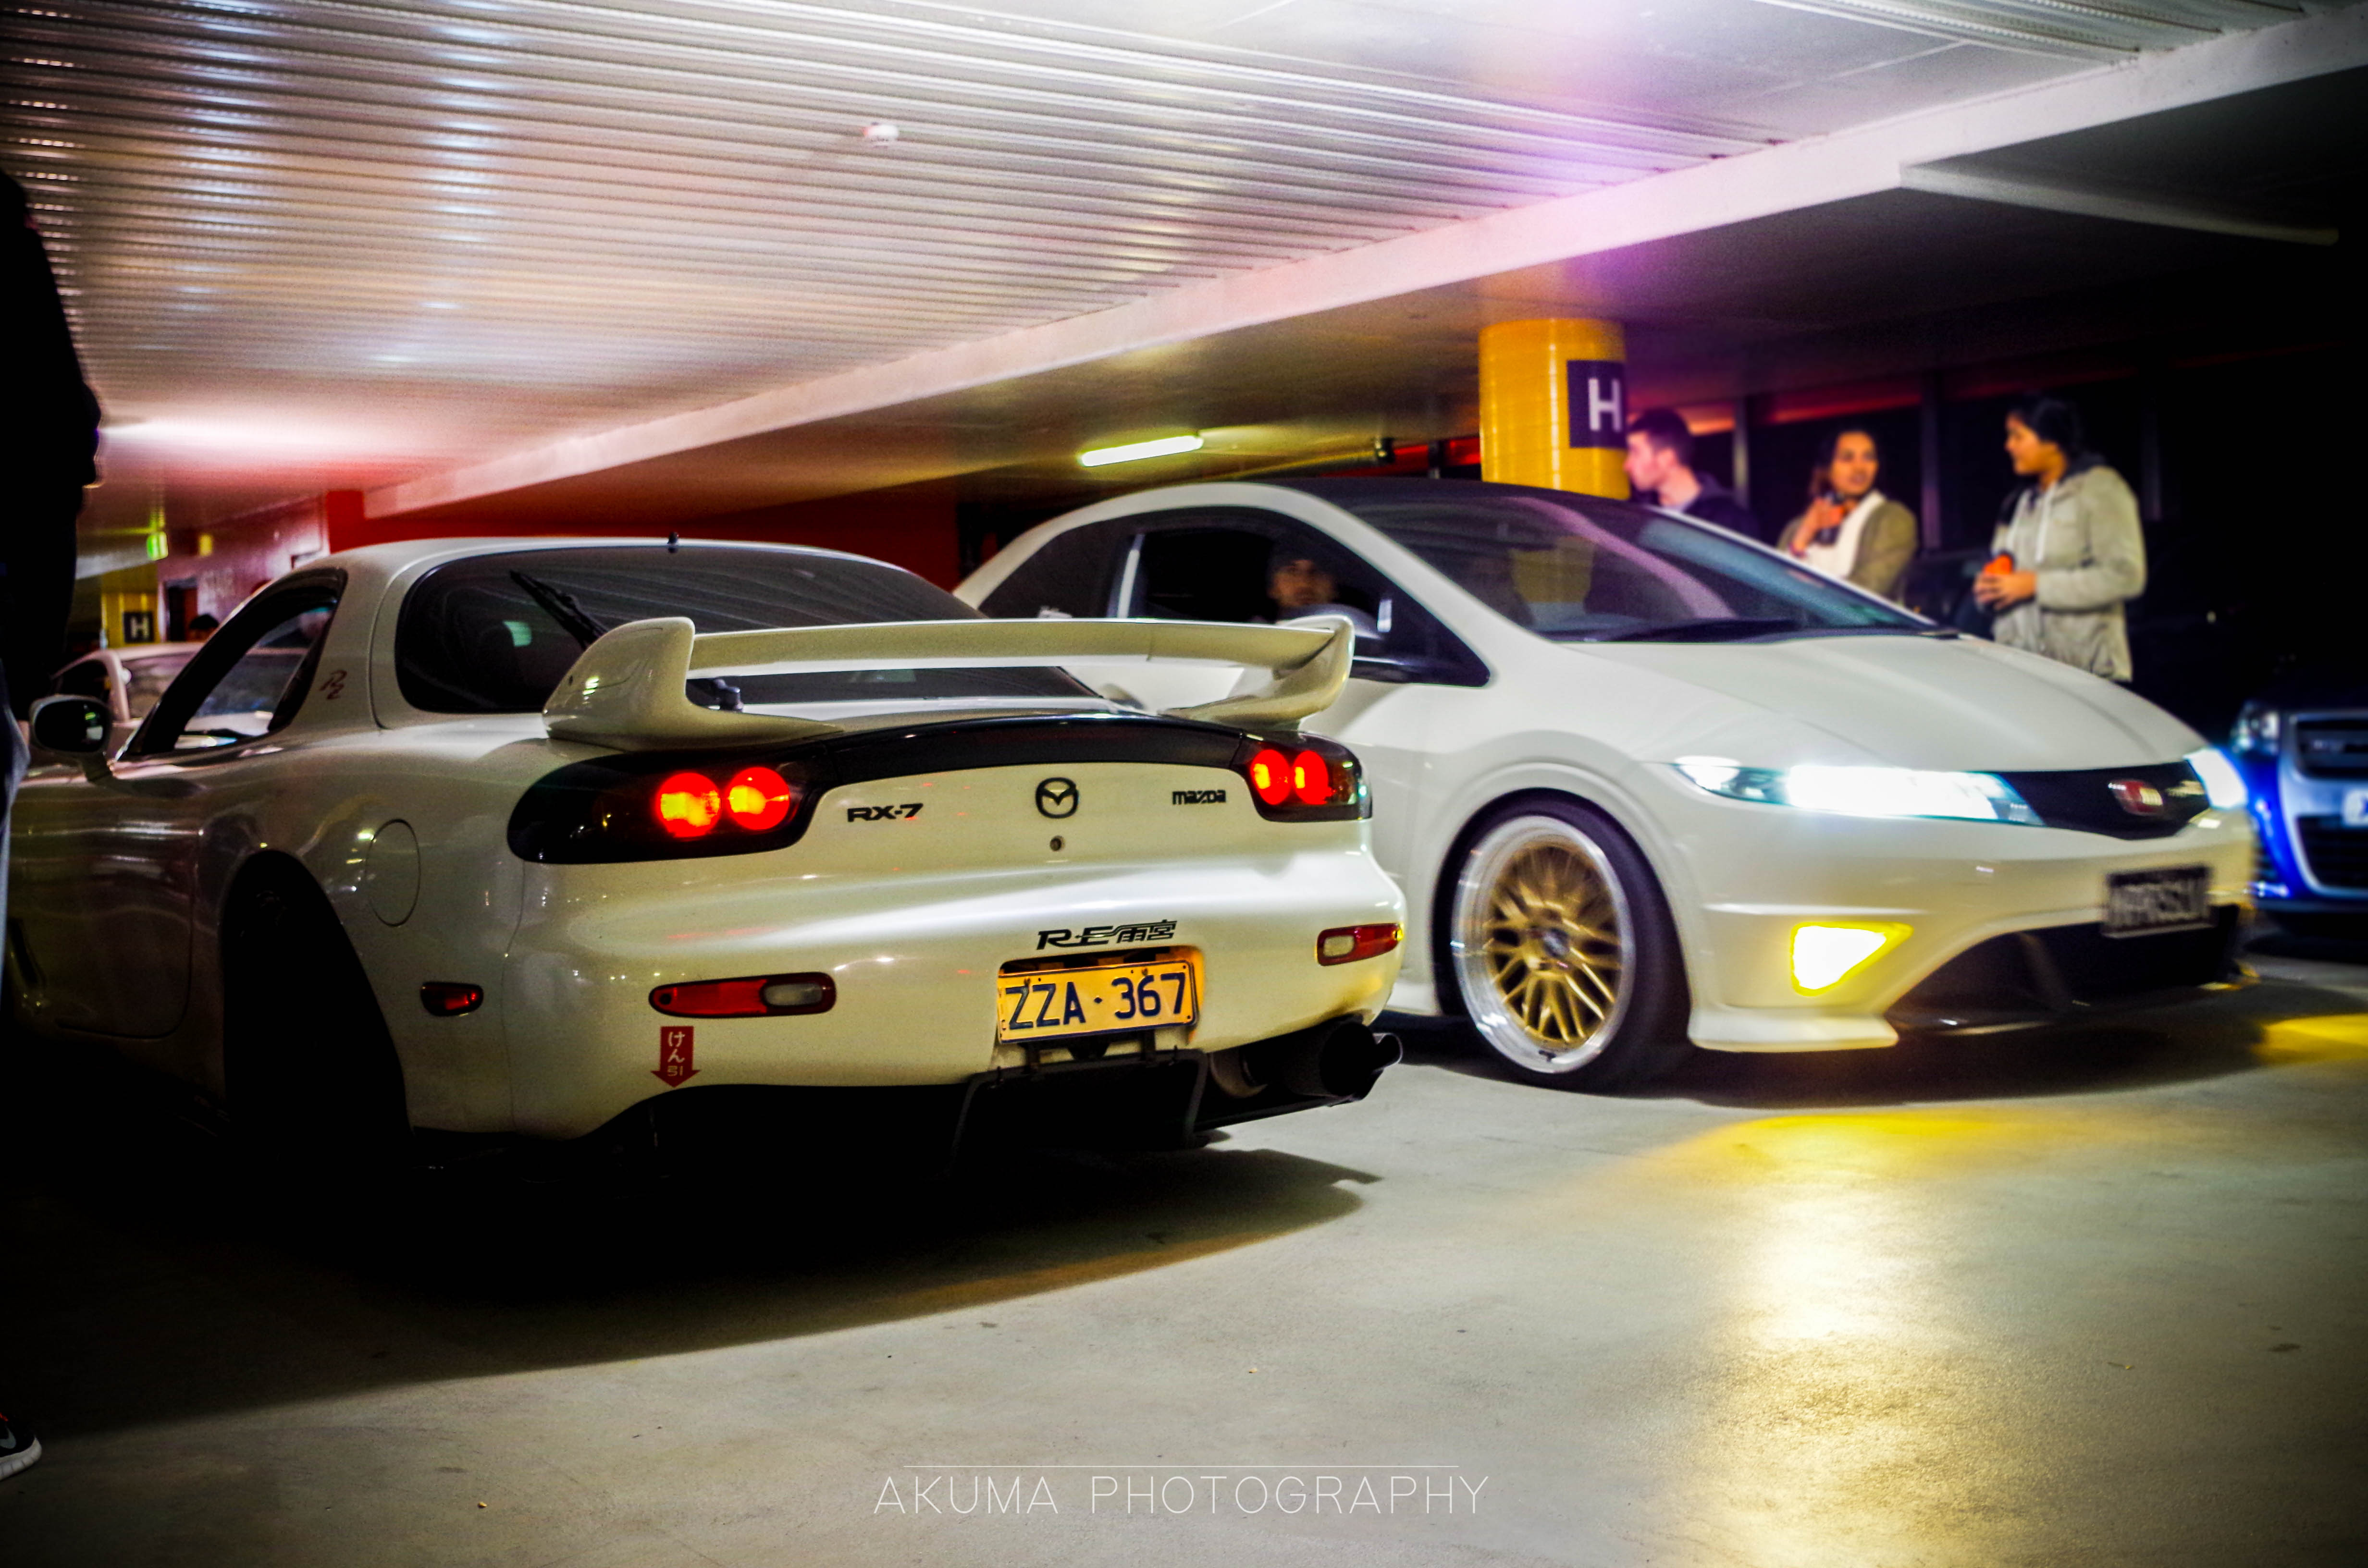 Melbourne Car Meets | Akuma Photography